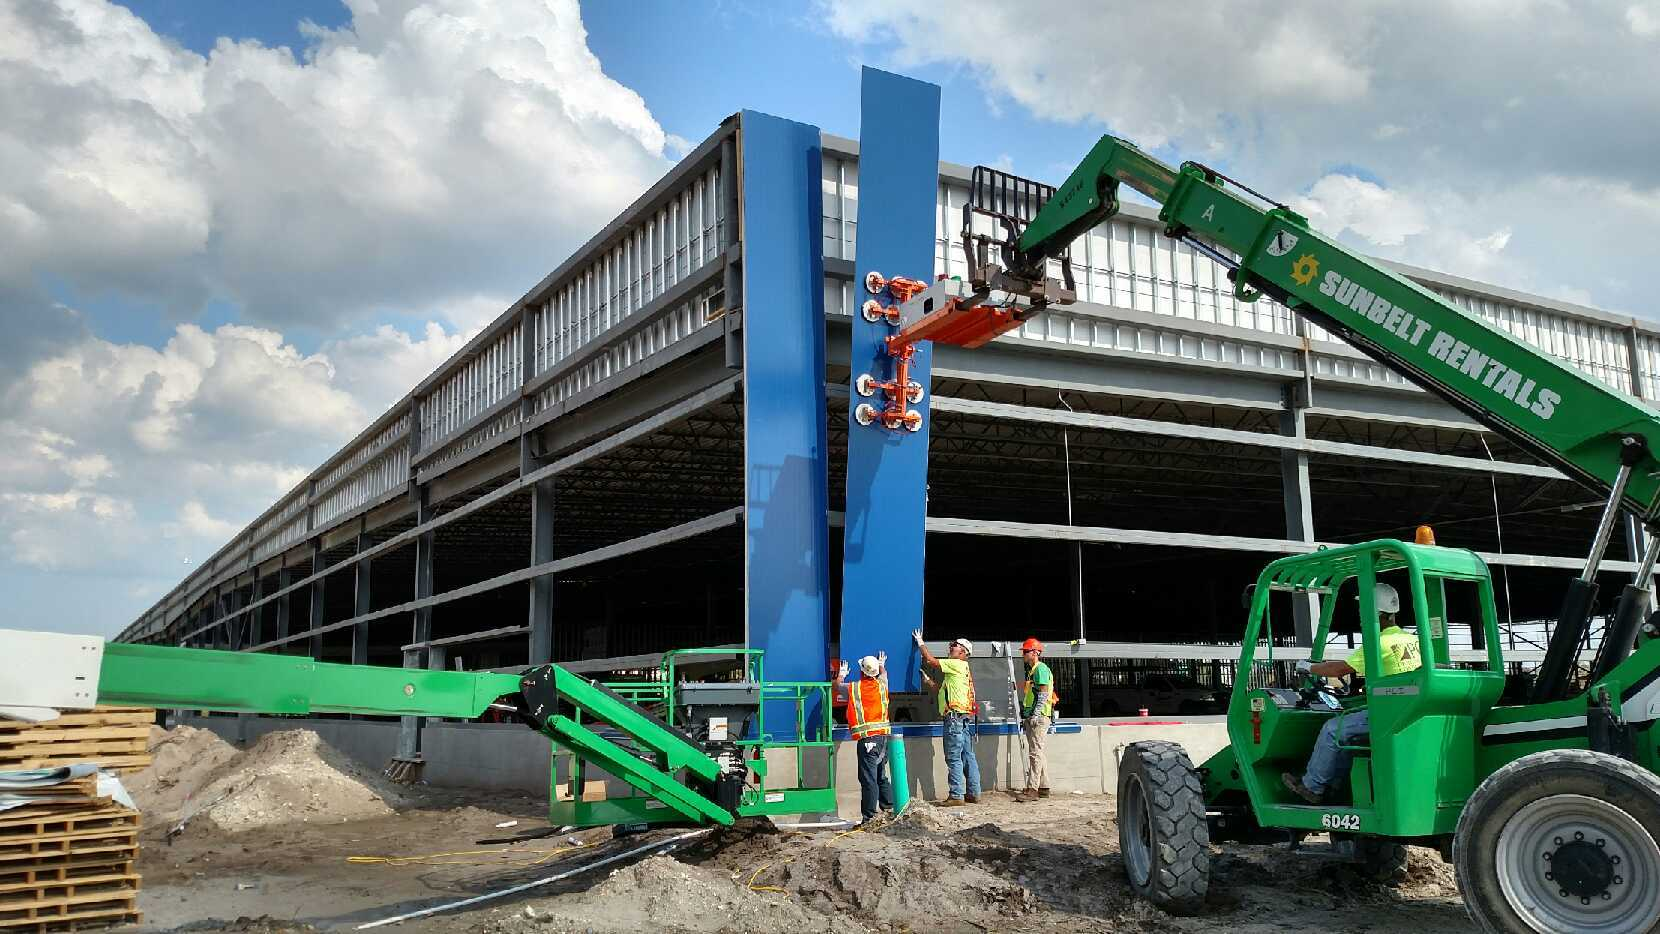 Iconic Blue Panels To Transform Future Ikea Jacksonville As Construction Progresses On Store Opening Fall 2017 Business Wire You'll find a wide selection of affordable furniture and home furnishings! business wire